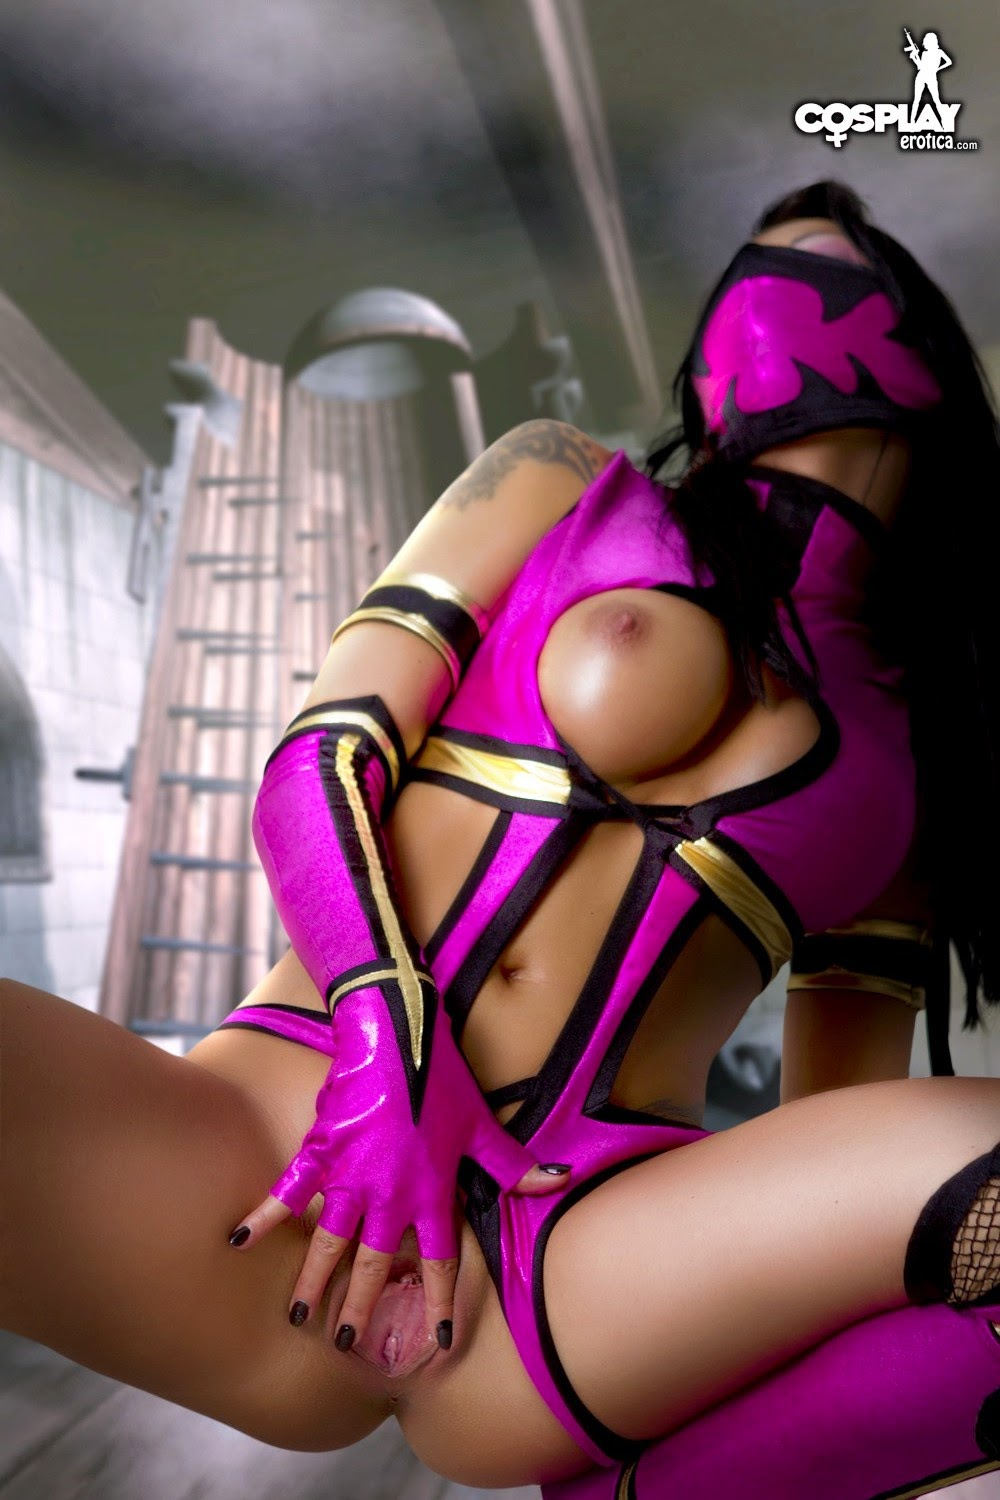 Mortal kombat mileena sexy xxx porncraft photo